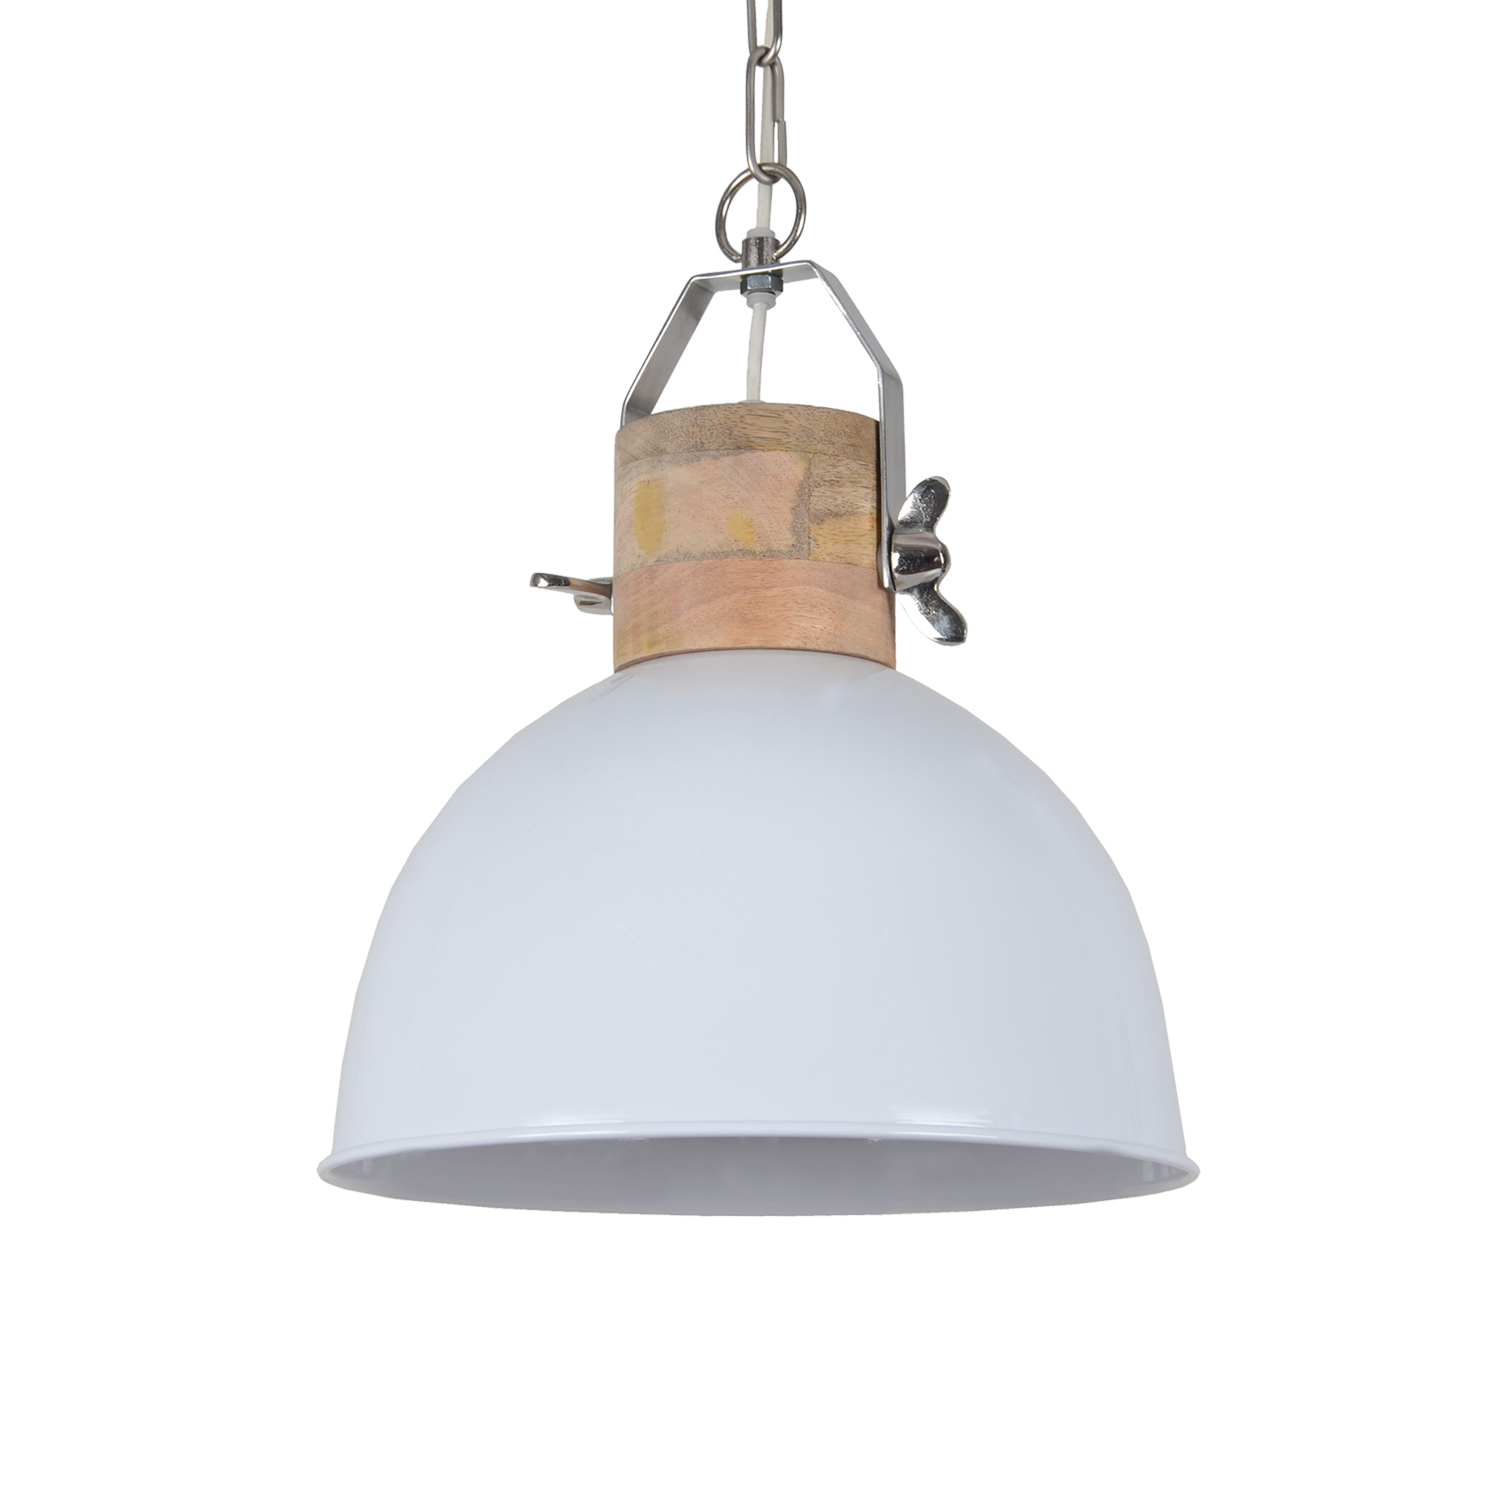 Hanglamp Fabriano 30 cm glans wit